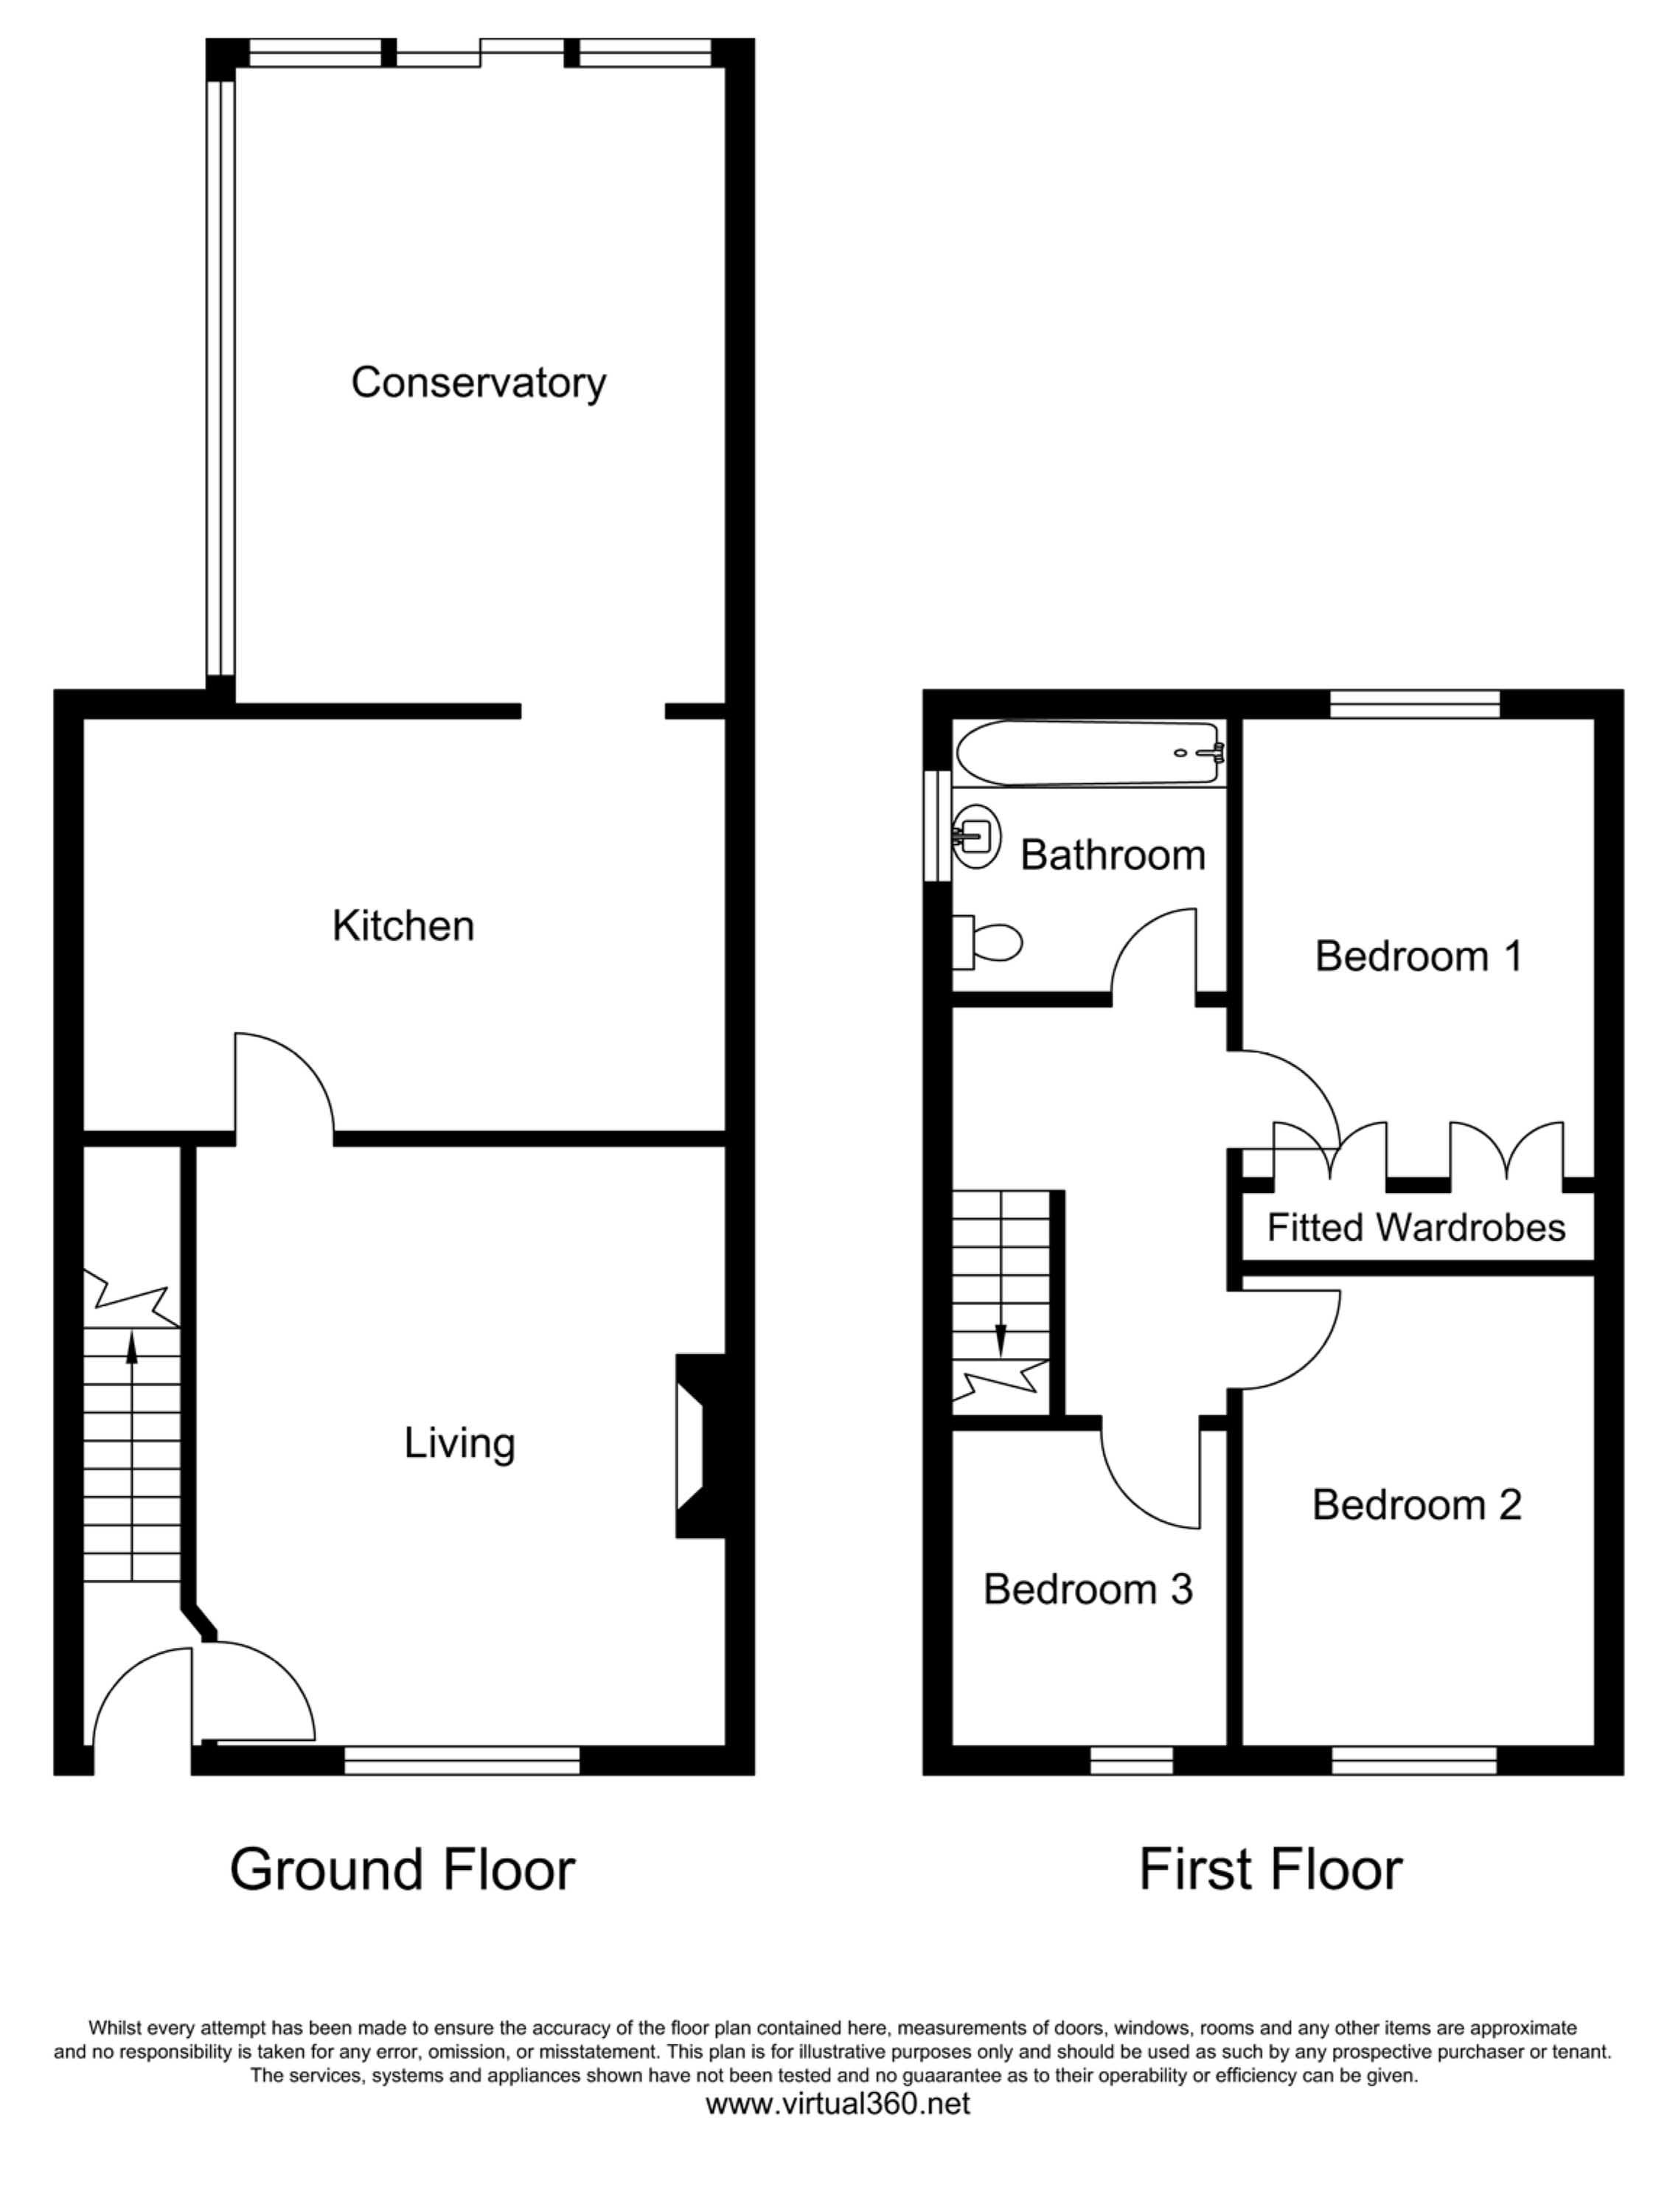 Chatsworth Road, Doncaster, South Yorkshire floor plan